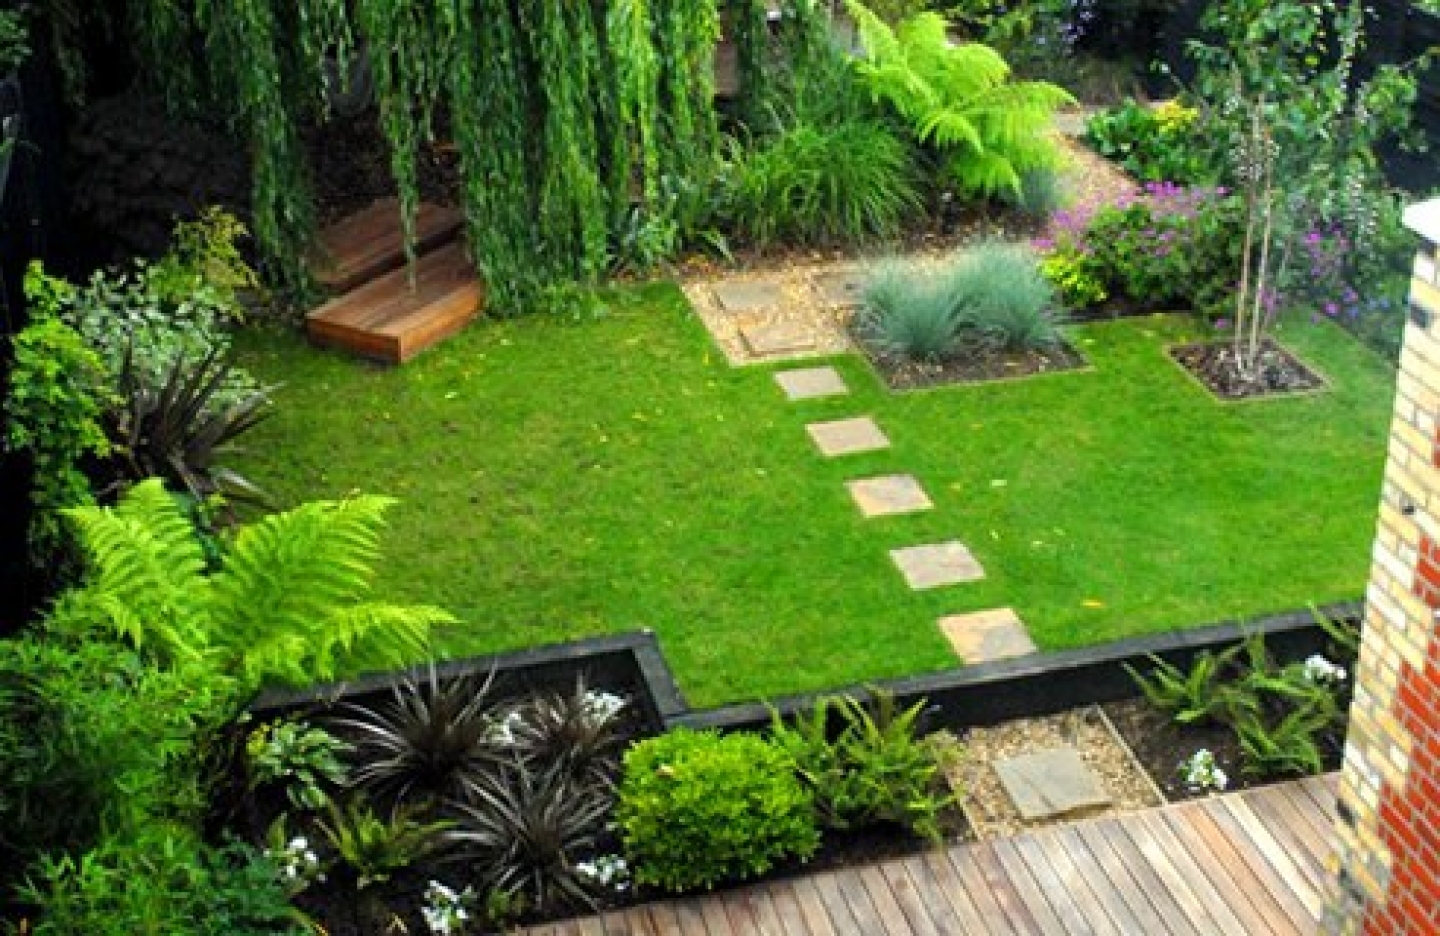 Etonnant Grass Garden Design Home Decor Color Trends Classy Simple With Grass ...